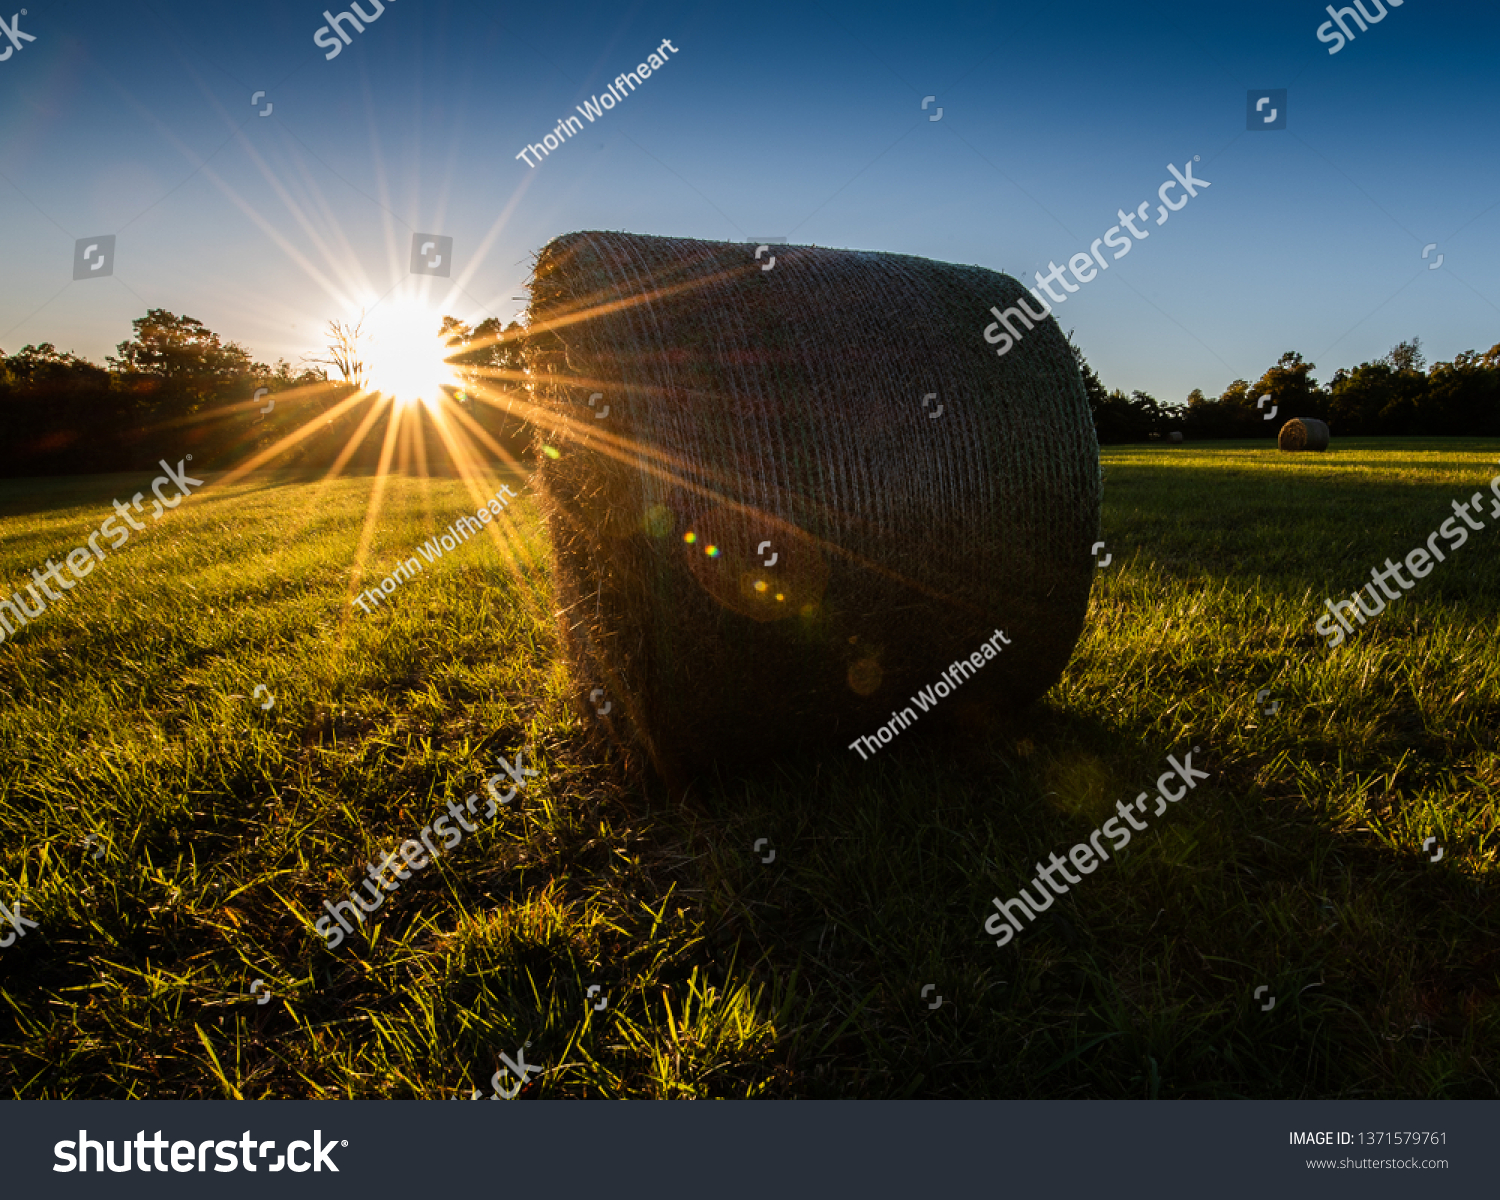 Arkansas countryside of a green field of hay bales in the rural area of the South. The farmlands of the south are exemplified in this sunset image.  #1371579761